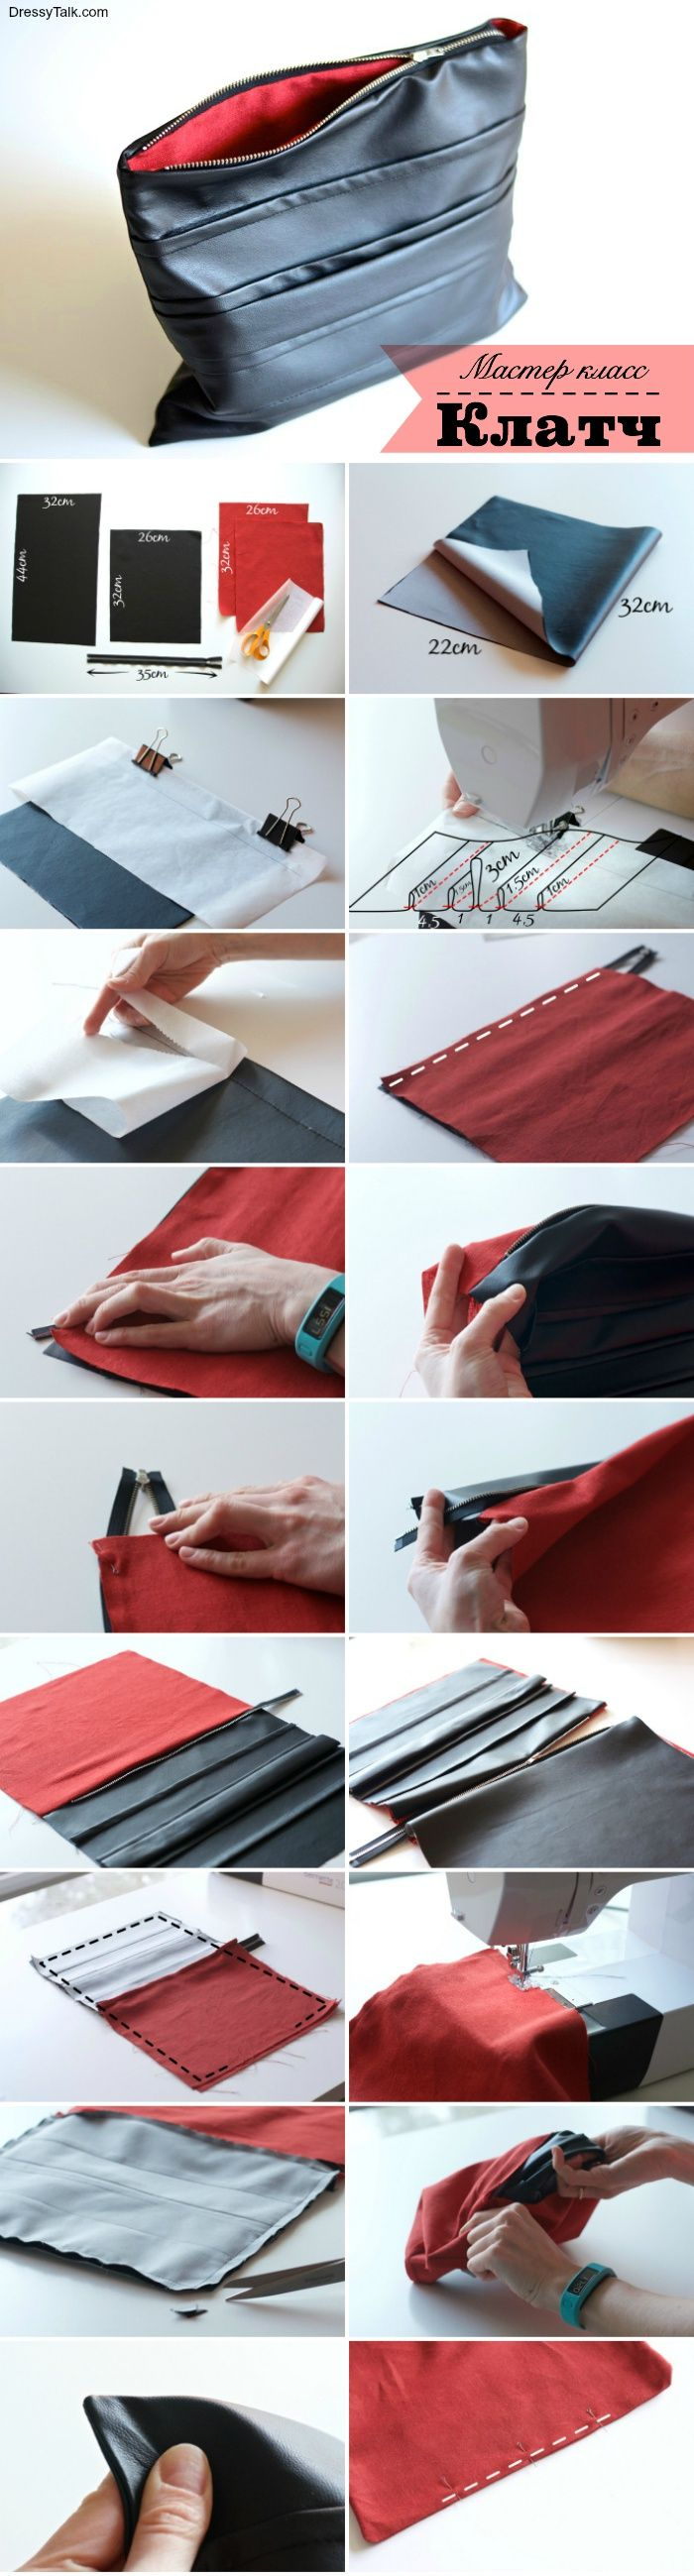 DIY (master class): clutch lined / Handbags, clutches, bags / SECOND STREET